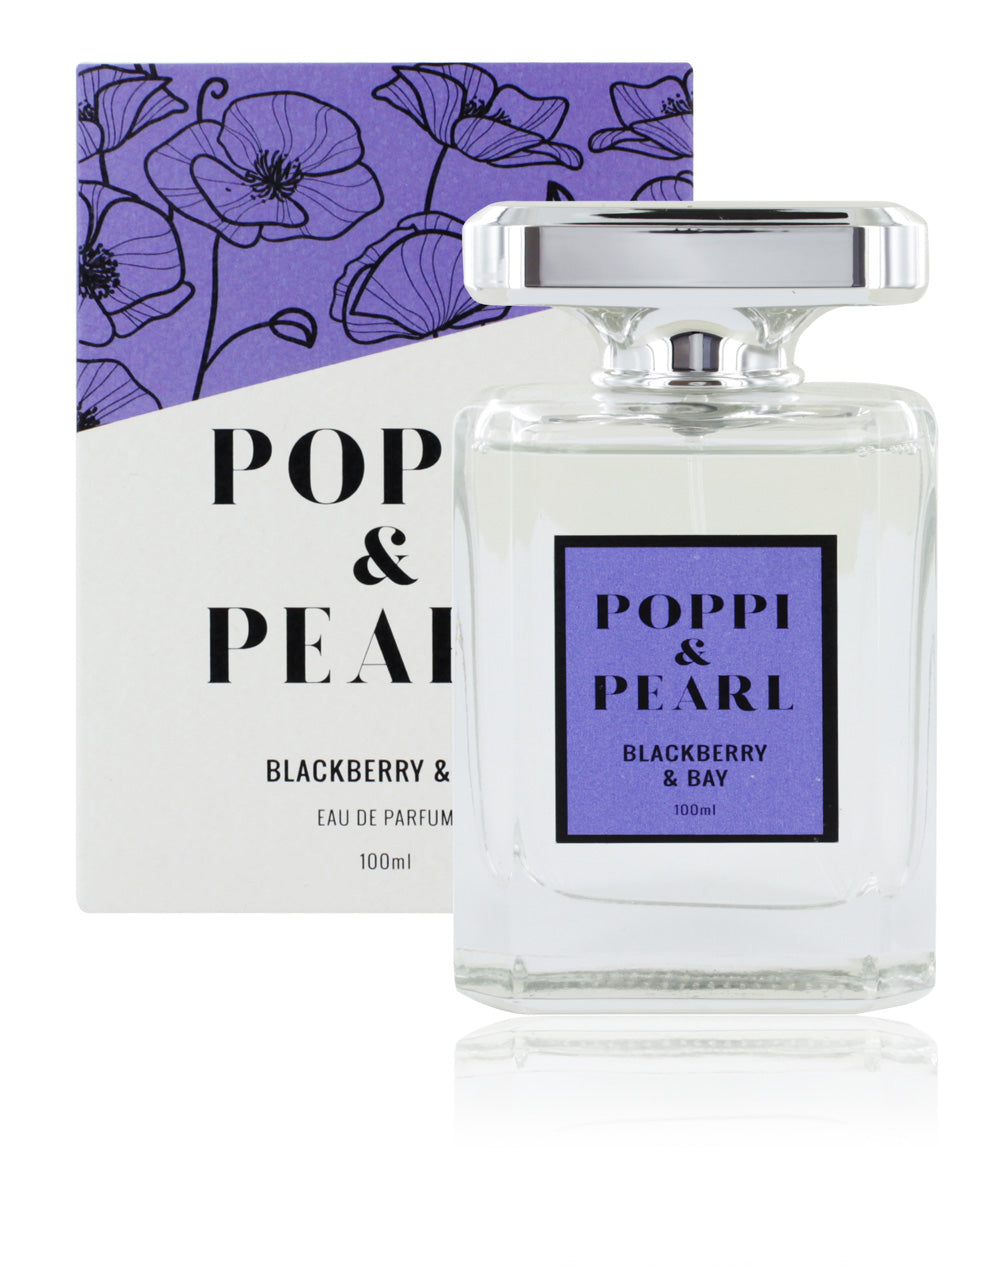 Poppi & Pearl Blackberry and Bay Eau De Parfum